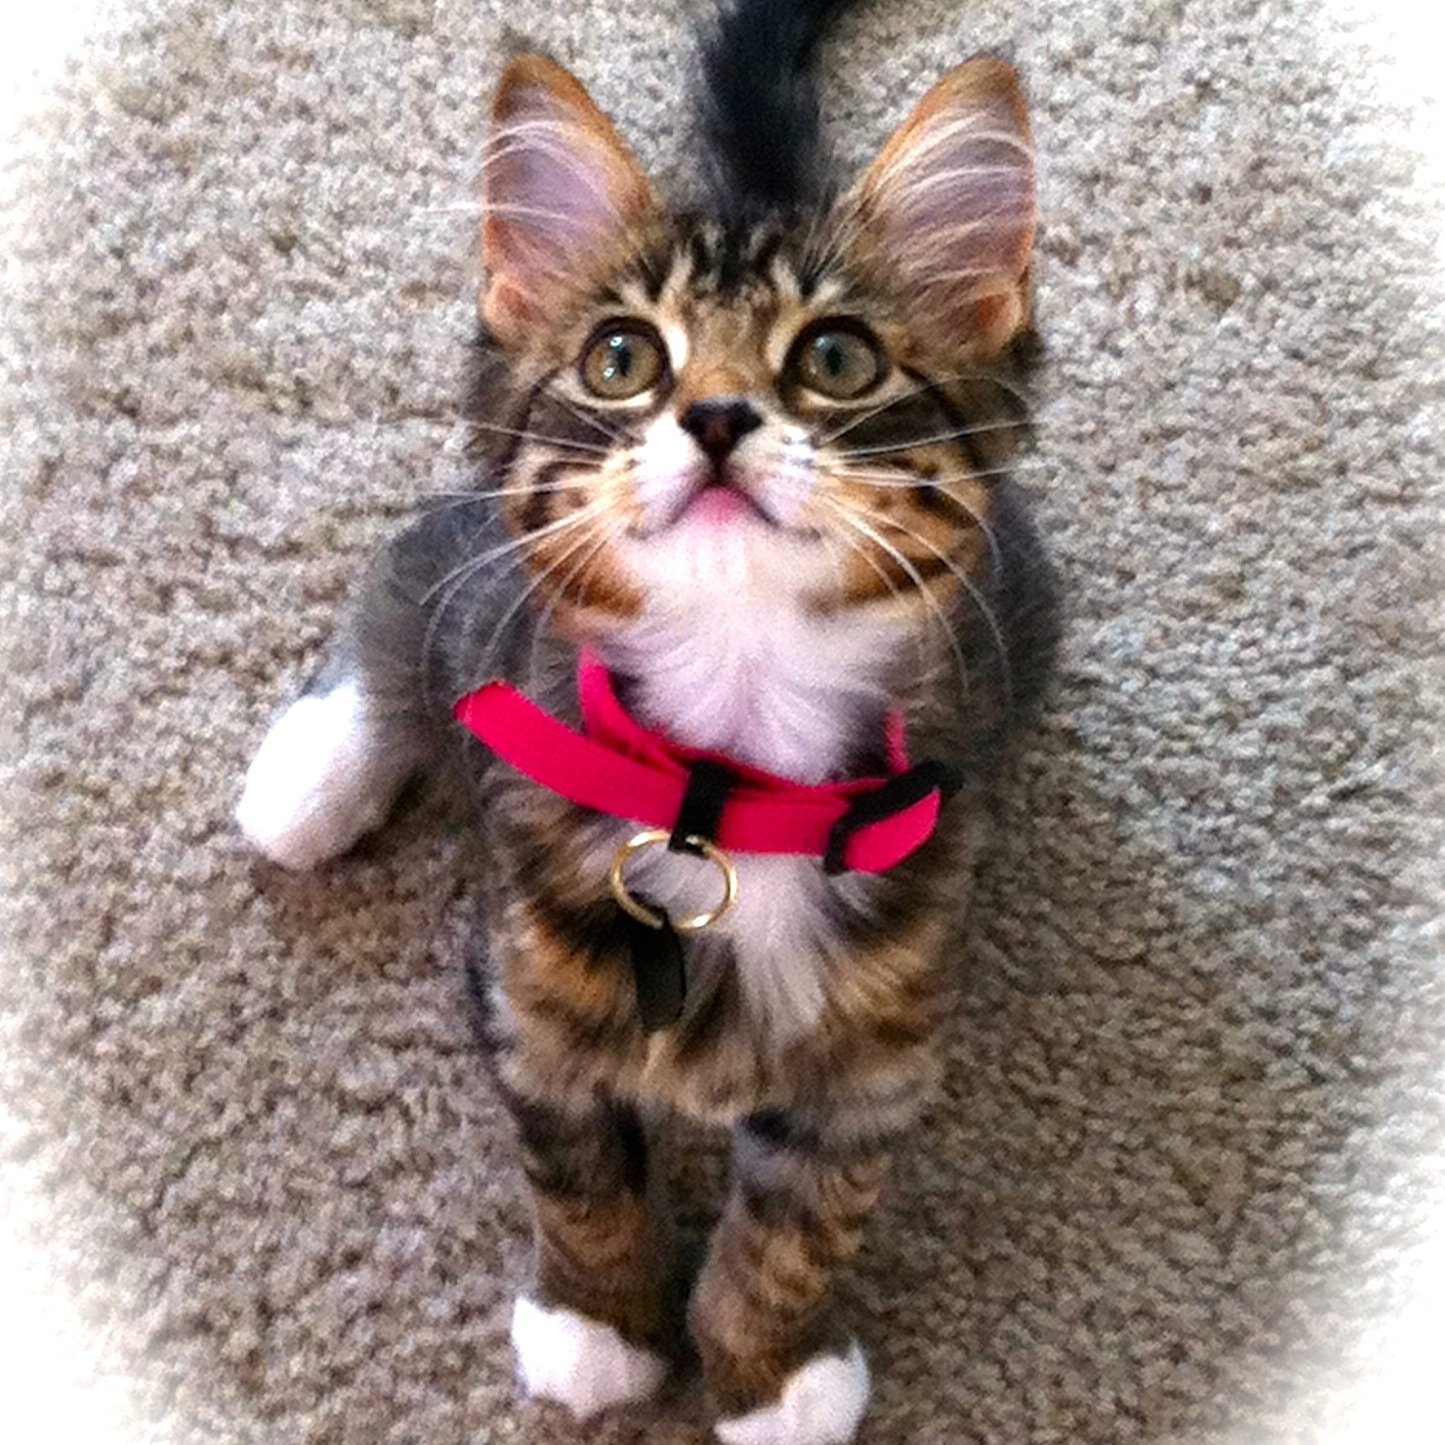 Cats and Kittens (@Cats__N_Kittens) | Twitter